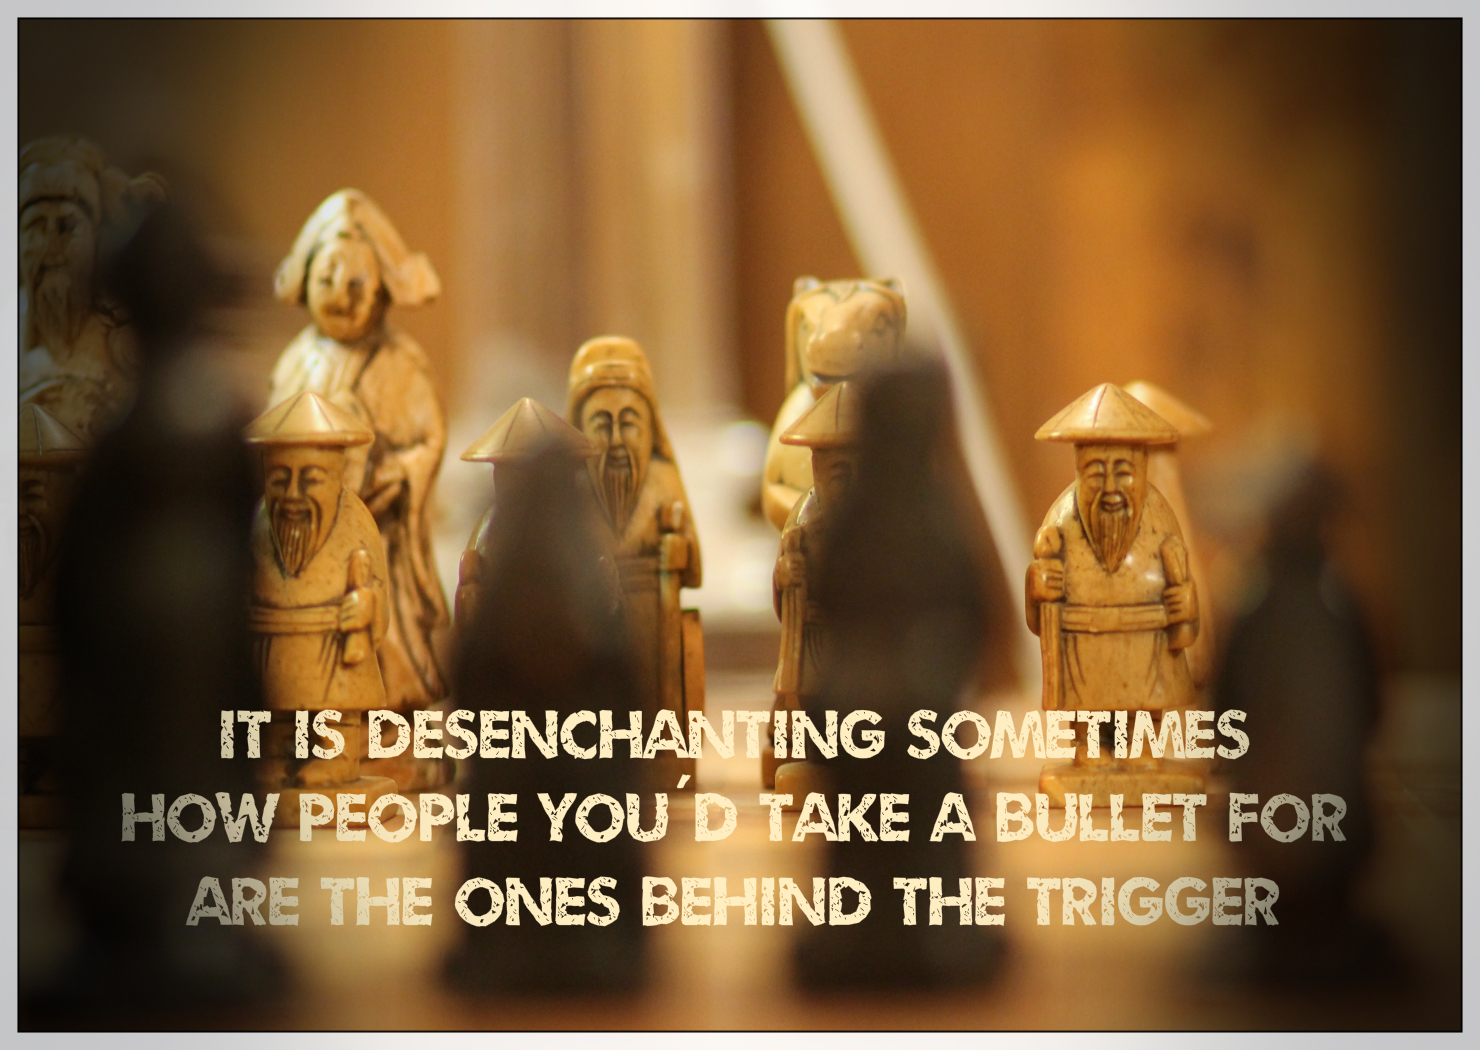 It is desenchanting sometimes how people you'd take a bullet for are the ones behind the trigger.